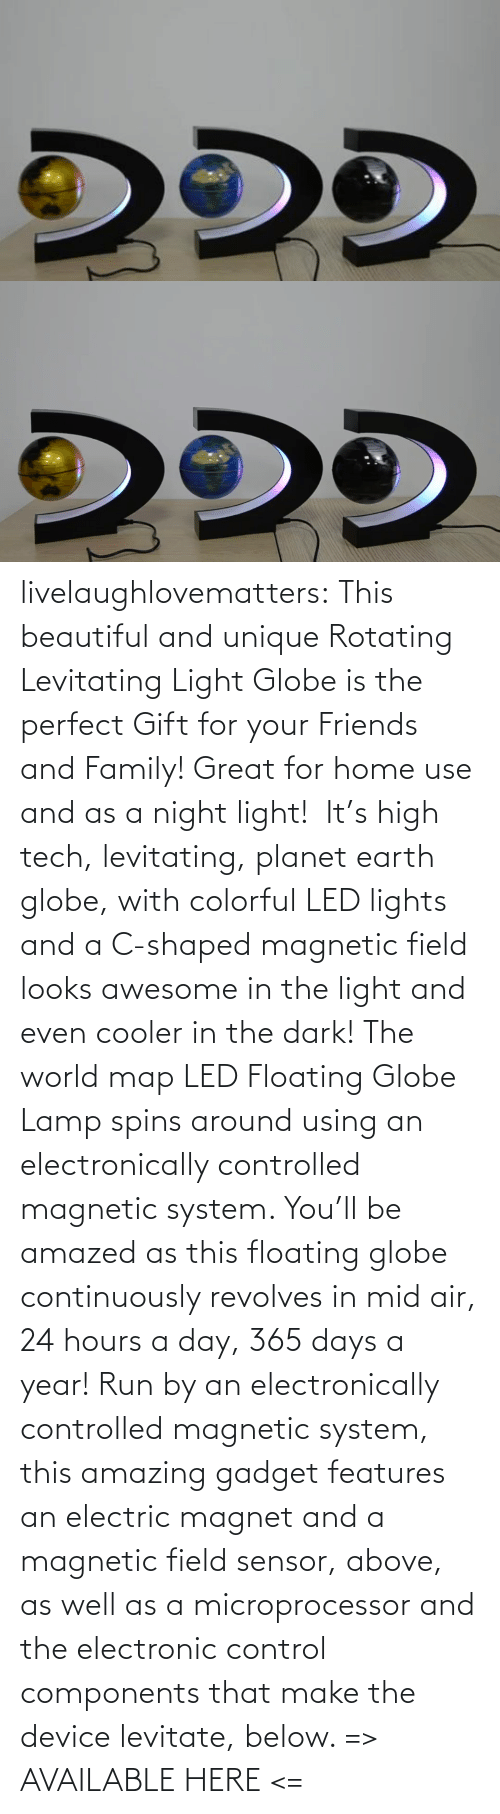 beautiful: livelaughlovematters: This beautiful and unique Rotating Levitating Light Globe is the perfect Gift for your Friends and Family! Great for home use and as a night light!  It's high tech, levitating, planet earth globe, with colorful LED lights and a C-shaped magnetic field looks awesome in the light and even cooler in the dark! The world map LED Floating Globe Lamp spins around using an electronically controlled magnetic system.  You'll be amazed as this floating globe continuously revolves in mid air, 24 hours a day, 365 days a year! Run by an electronically controlled magnetic system, this amazing gadget features an electric magnet and a magnetic field sensor, above, as well as a microprocessor and the electronic control components that make the device levitate, below.  => AVAILABLE HERE <=